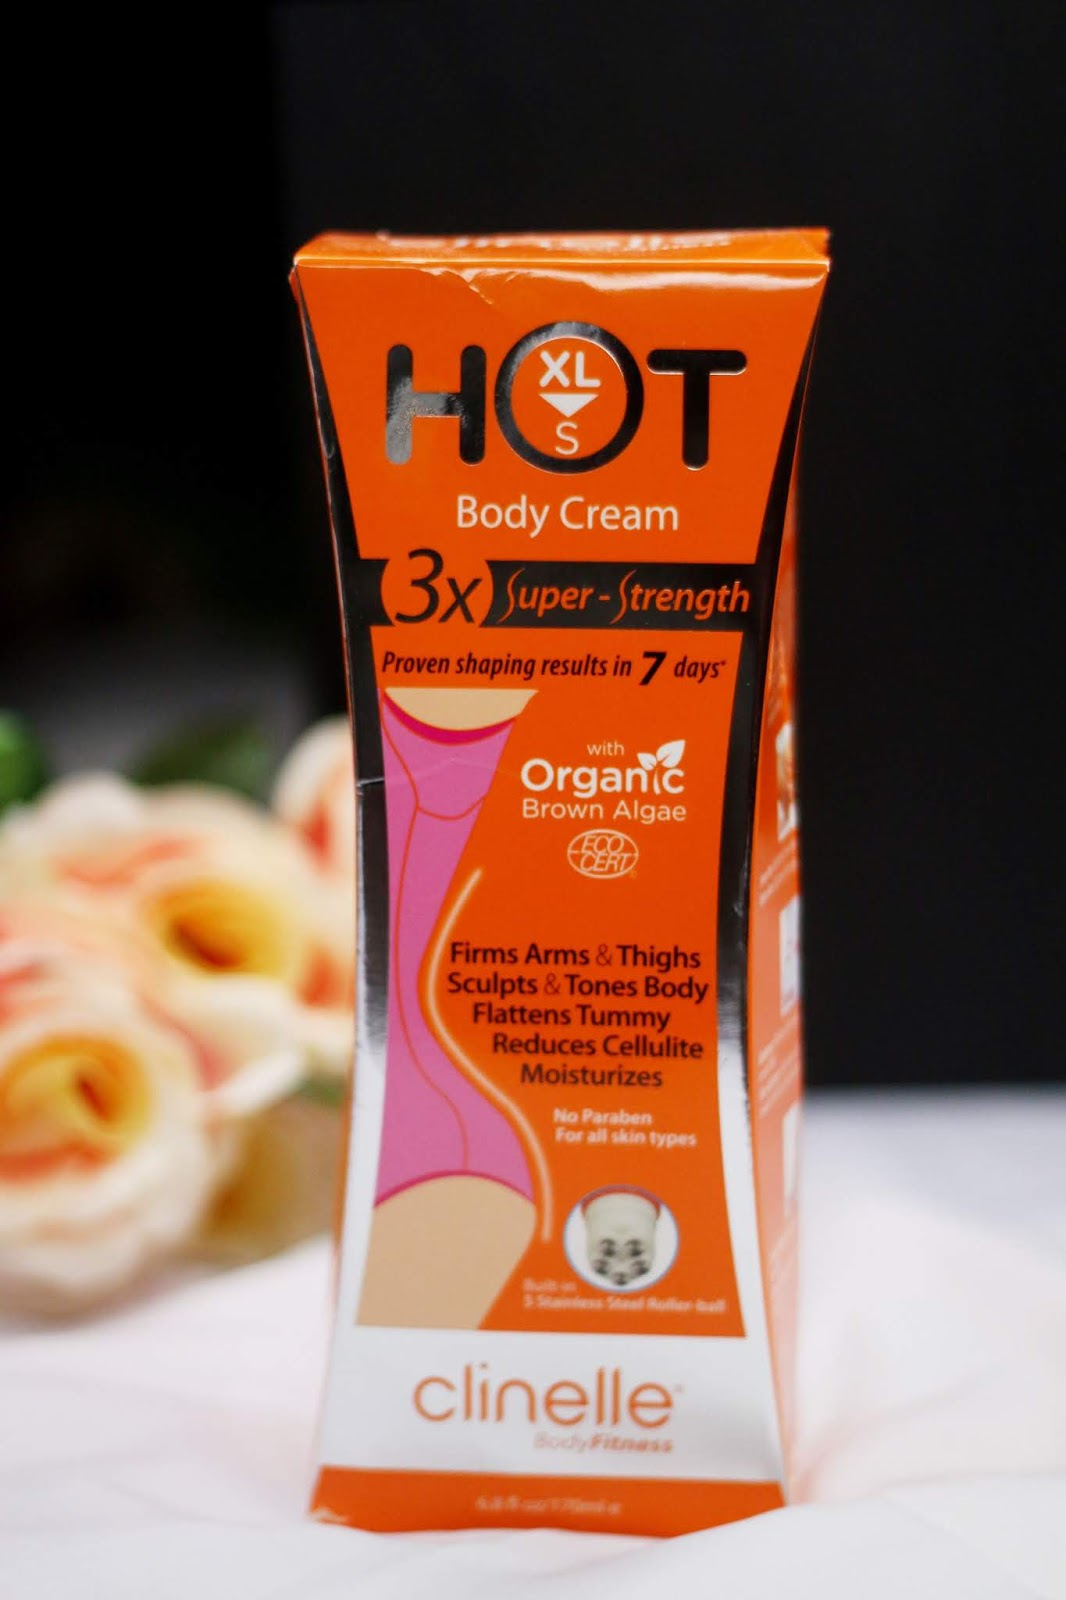 Clinelle-Hot-Body-Cream